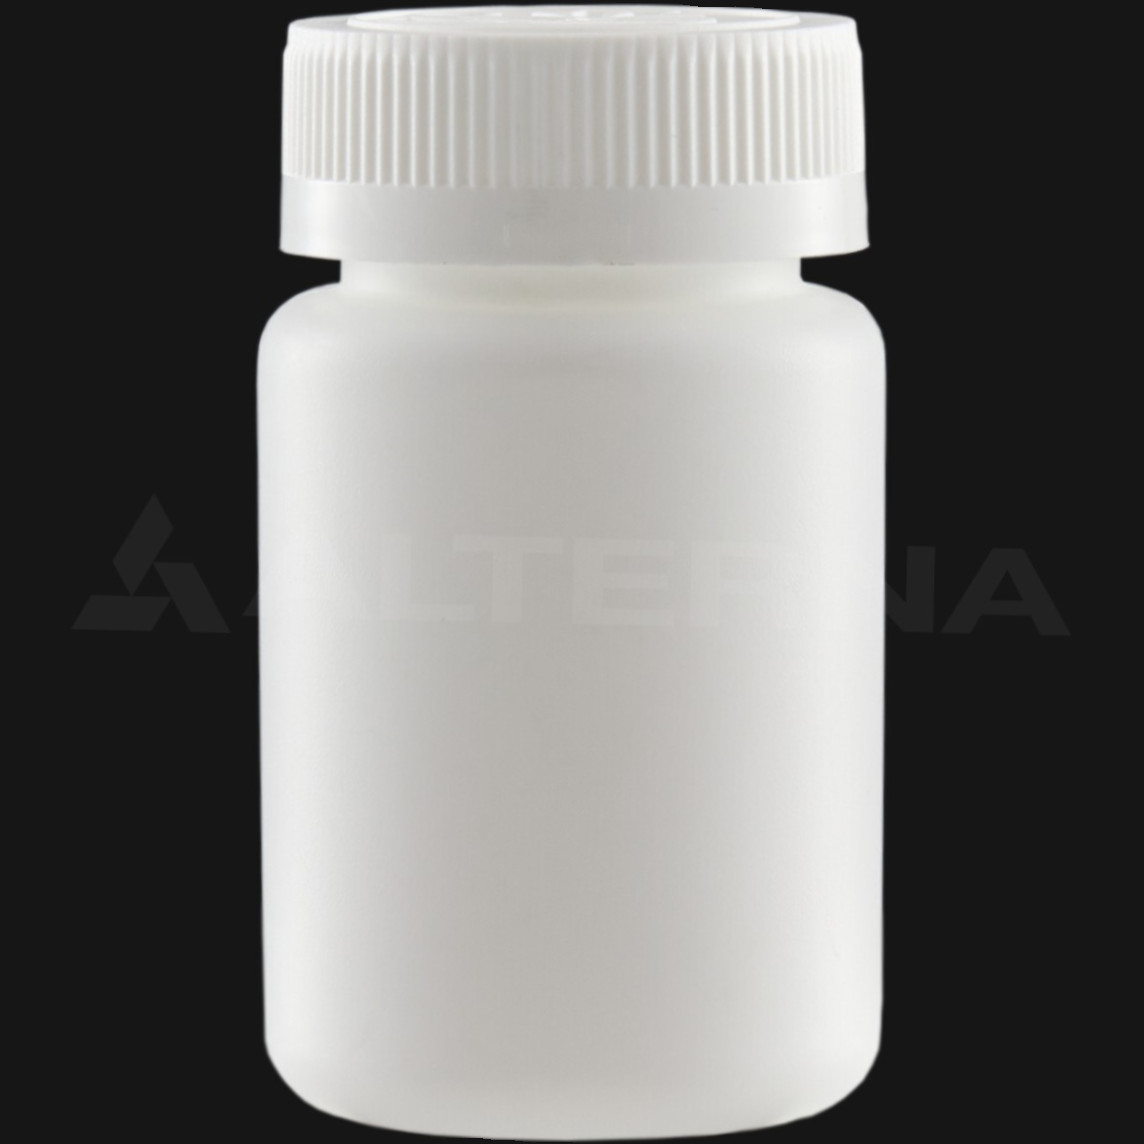 100 ml HDPE Pill Bottle with 38 mm Child Resistant Cap